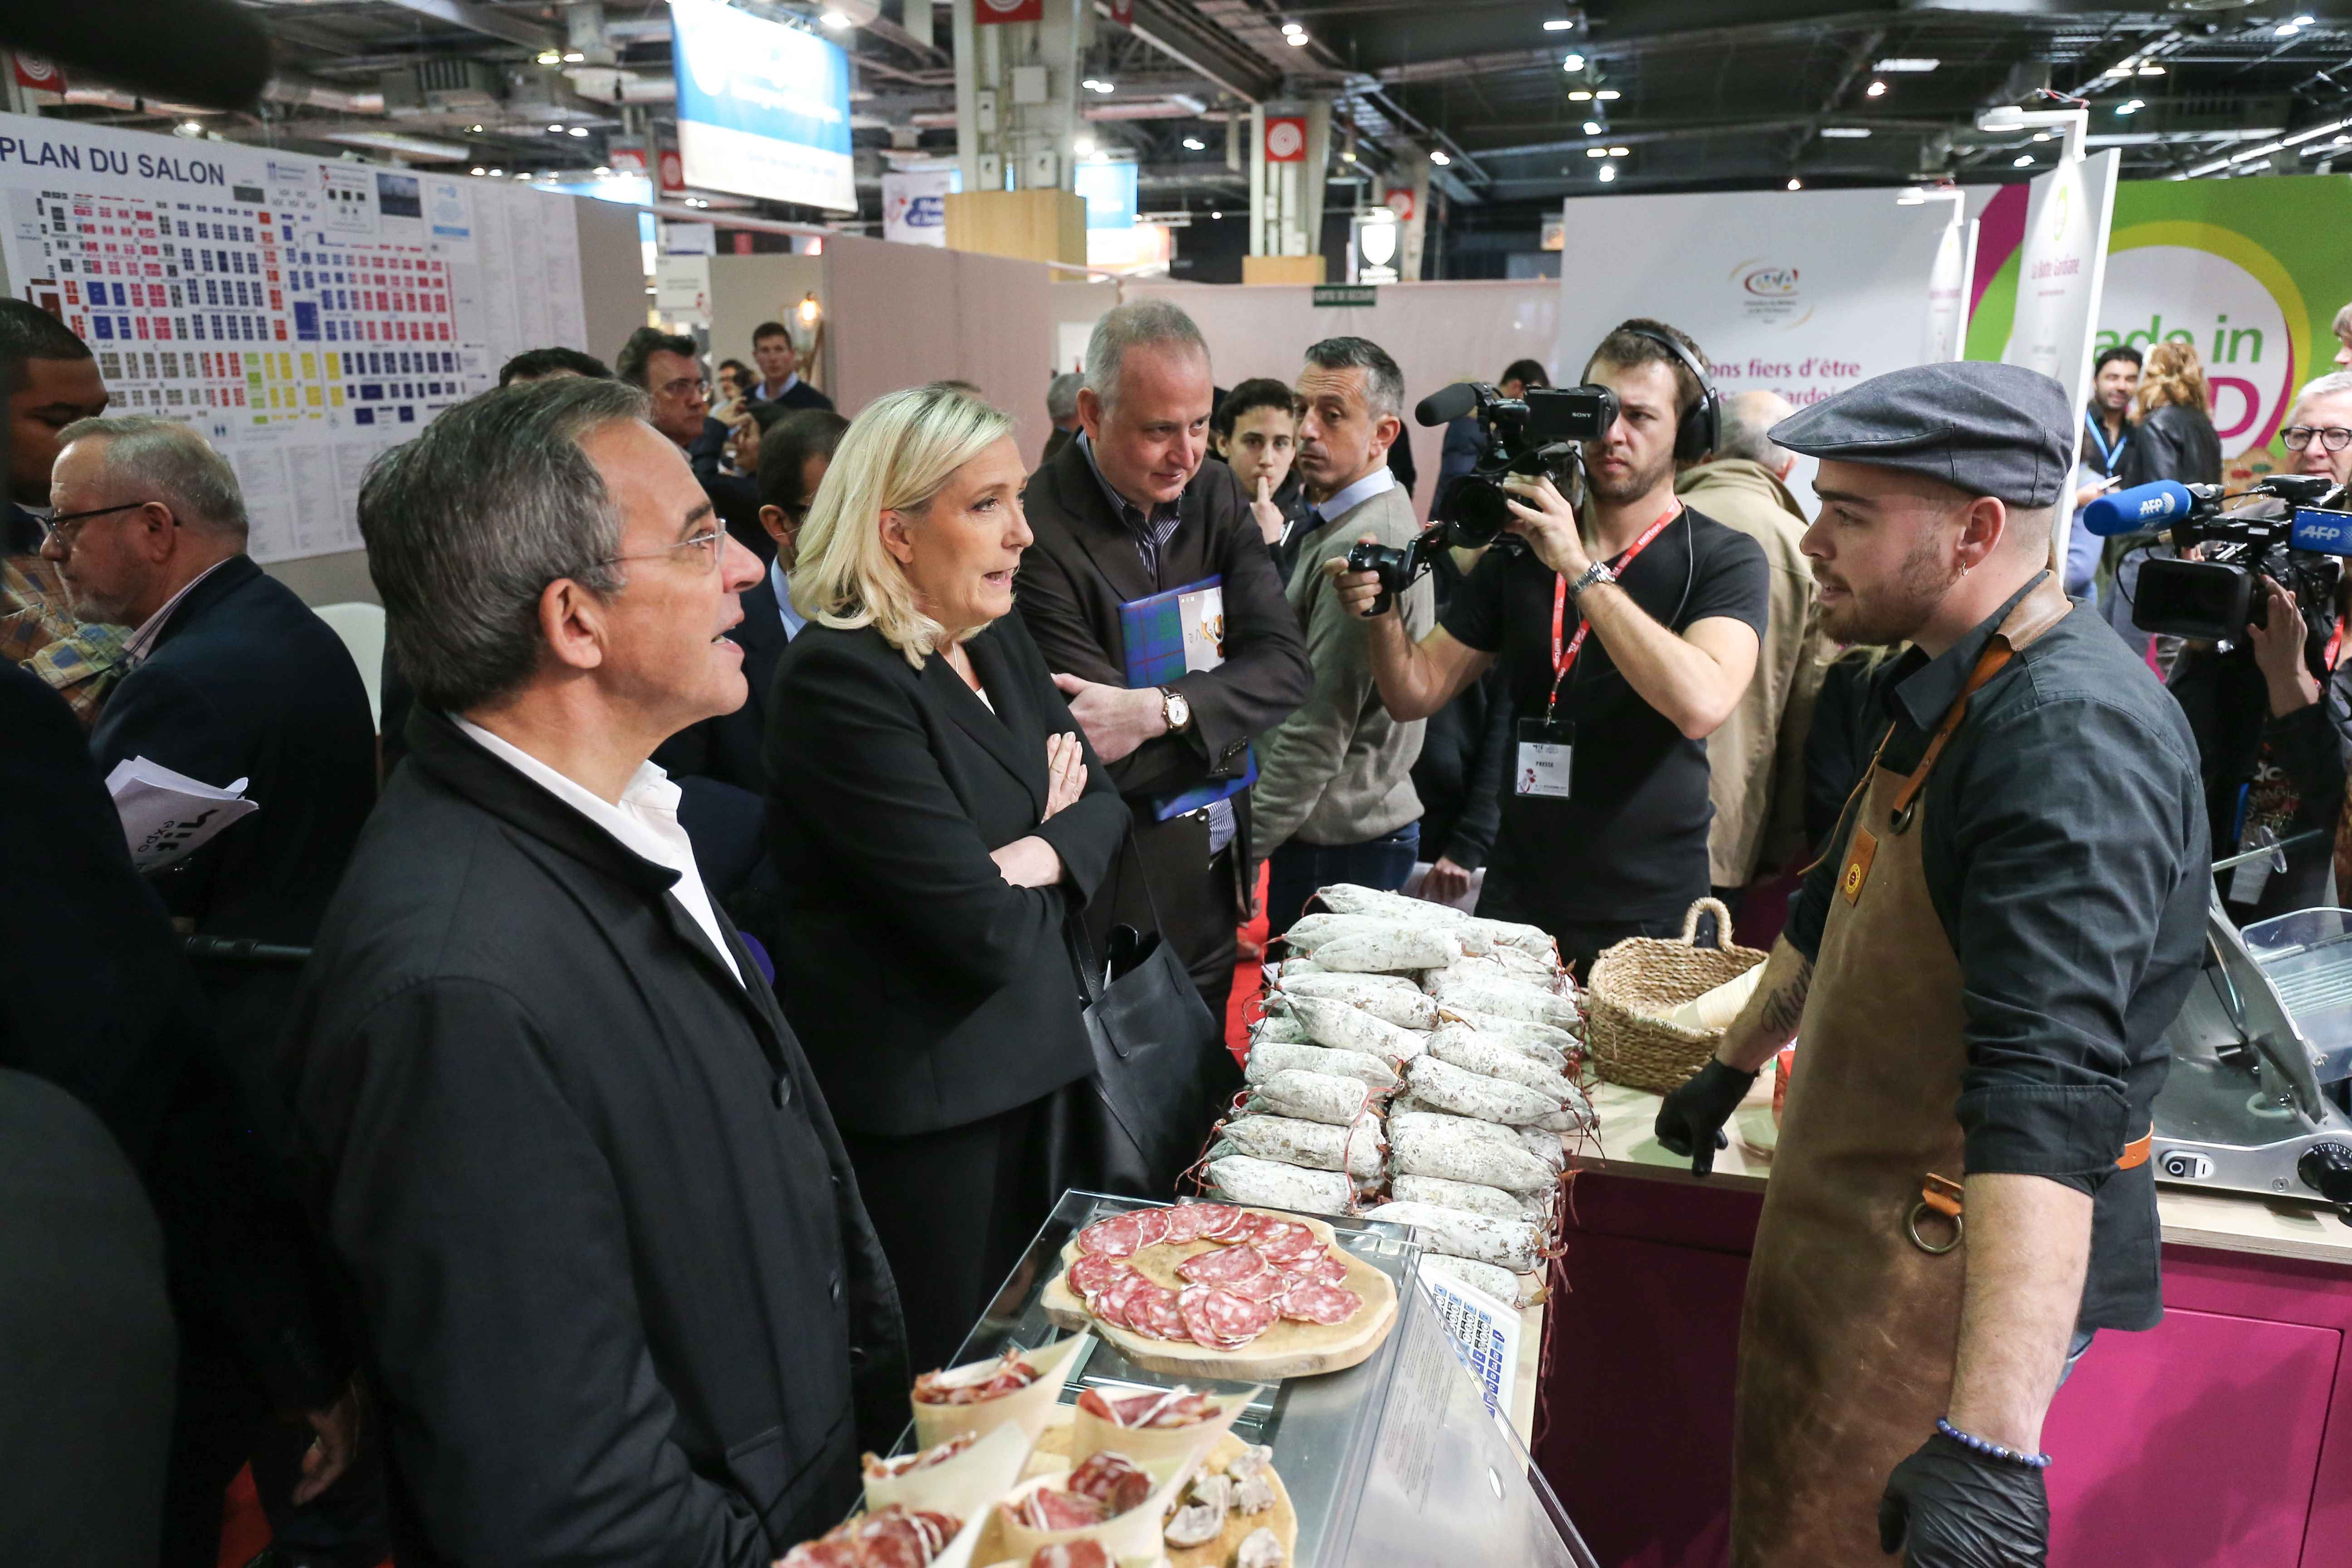 French far-right Rassemblement National (RN) party's president and MP Marine Le Pen (c) talks with a delicatessen maker as she visits the Made in France Fair, on November 9, 2019, at the Porte de Versailles, in Paris.